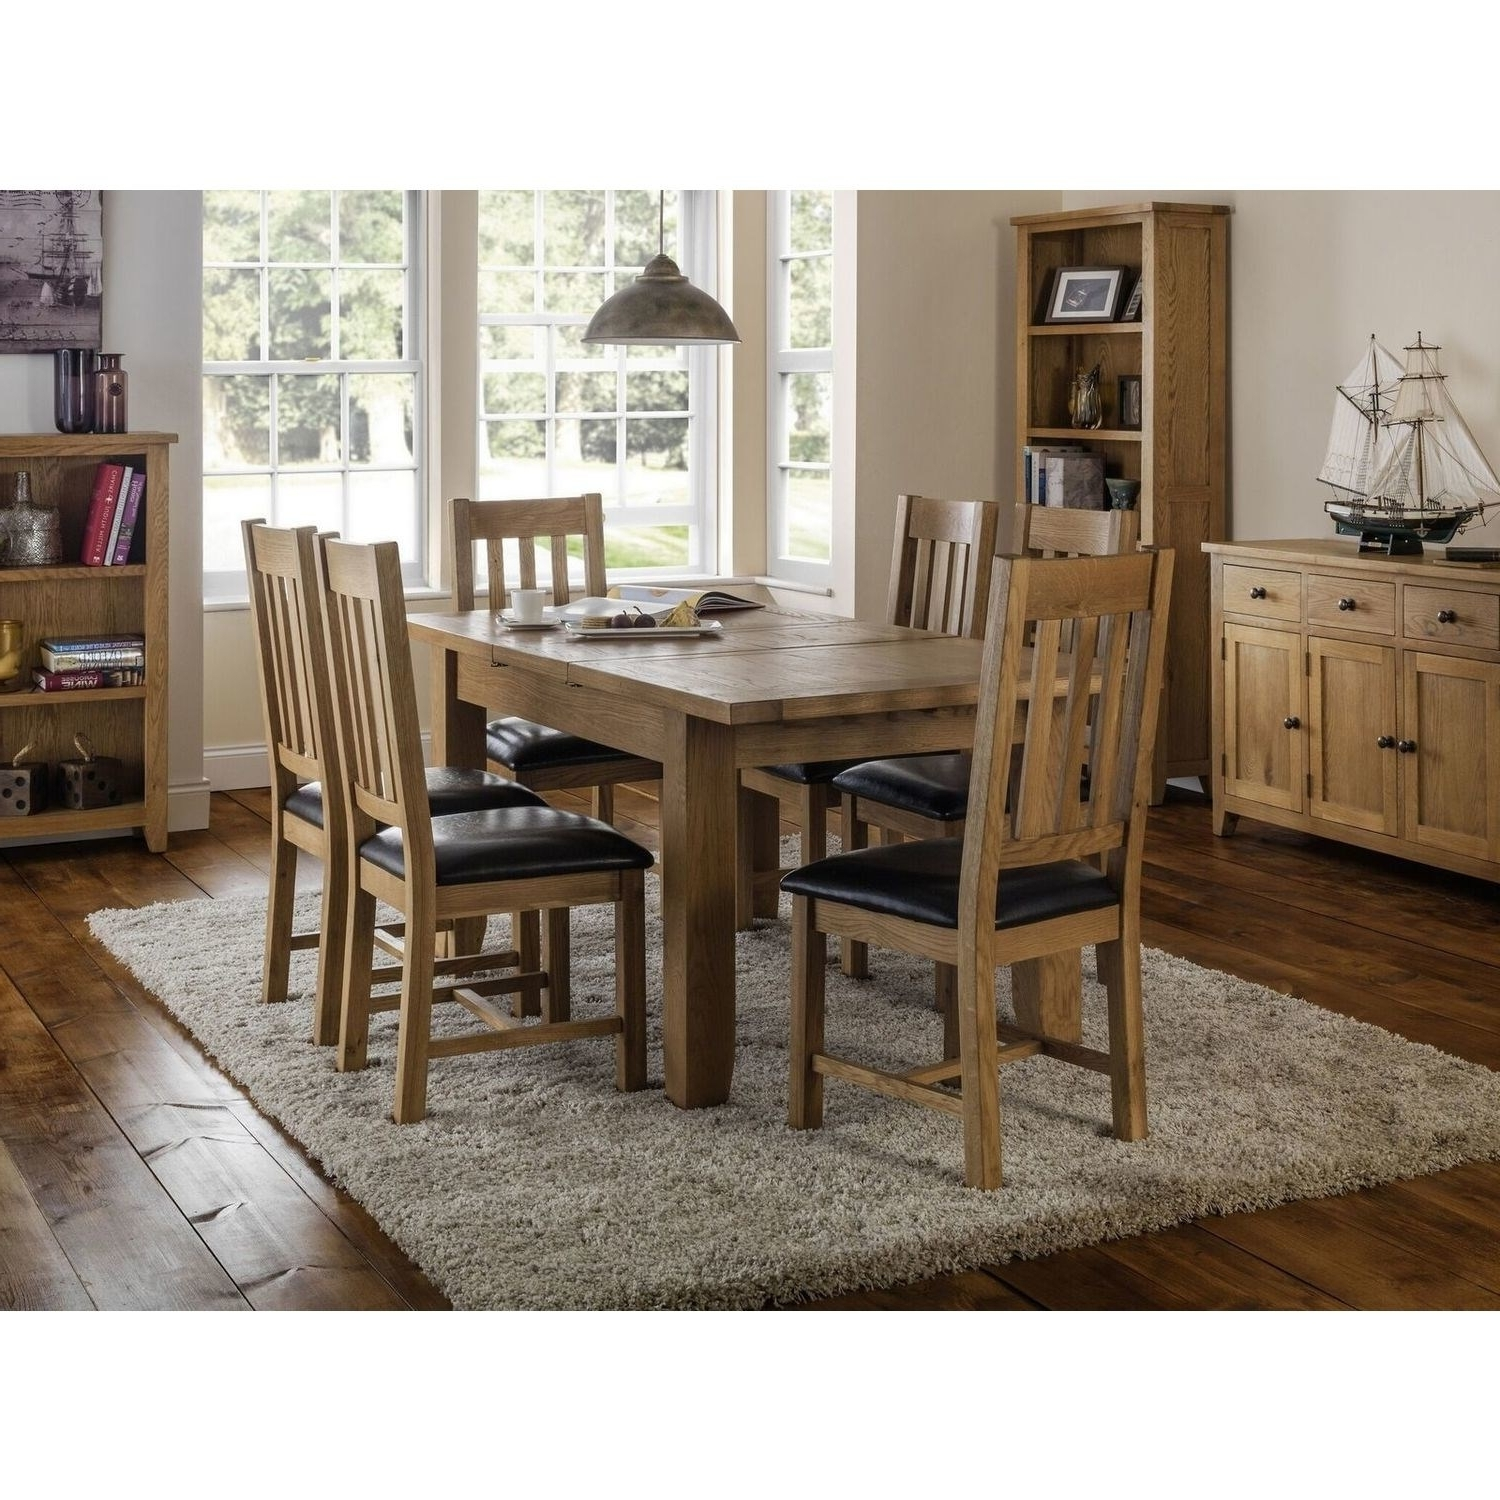 Extending Dining Table Sets In Famous Julian Bowen Astoria Extending Dining Table Set With 6 Astoria (Gallery 9 of 25)